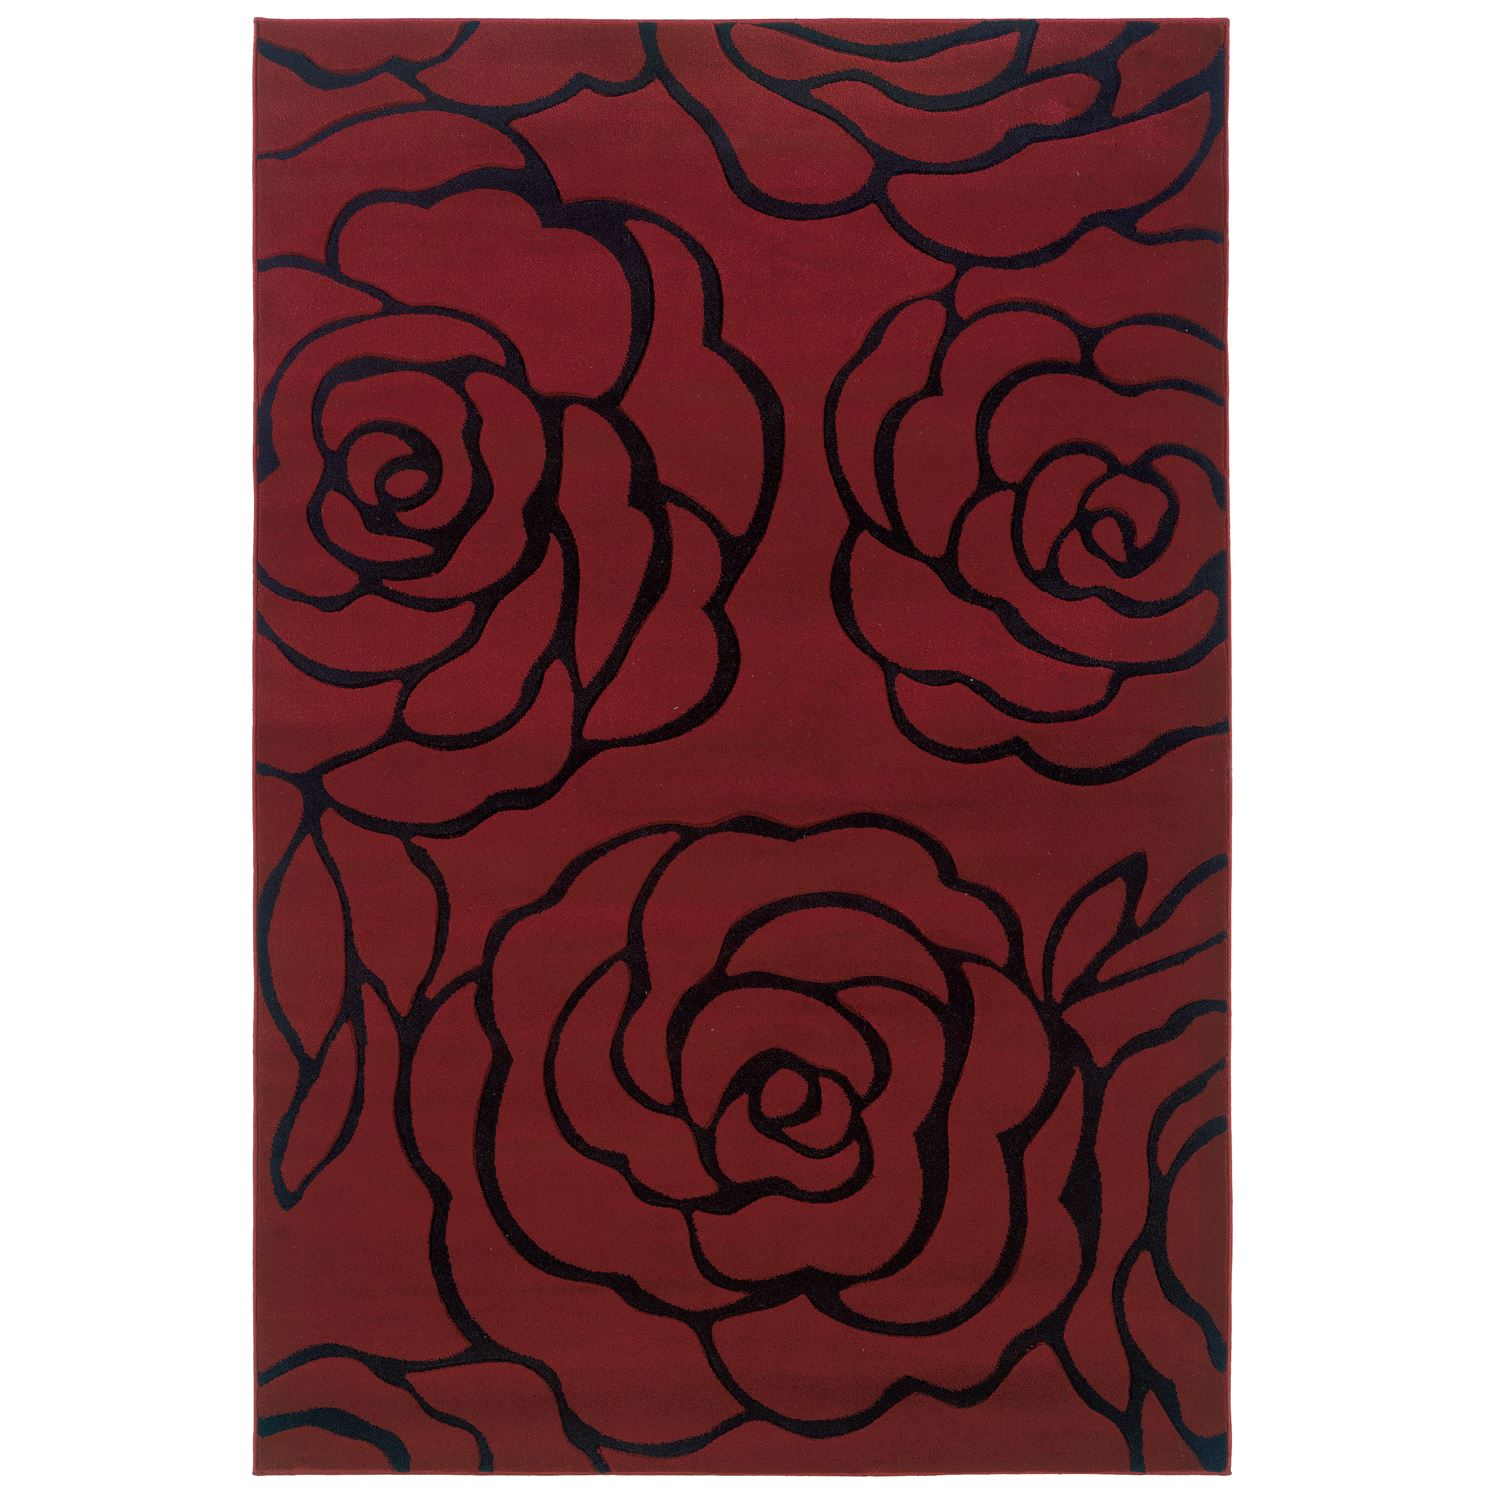 Milan Red/Black Area Rug Collection,